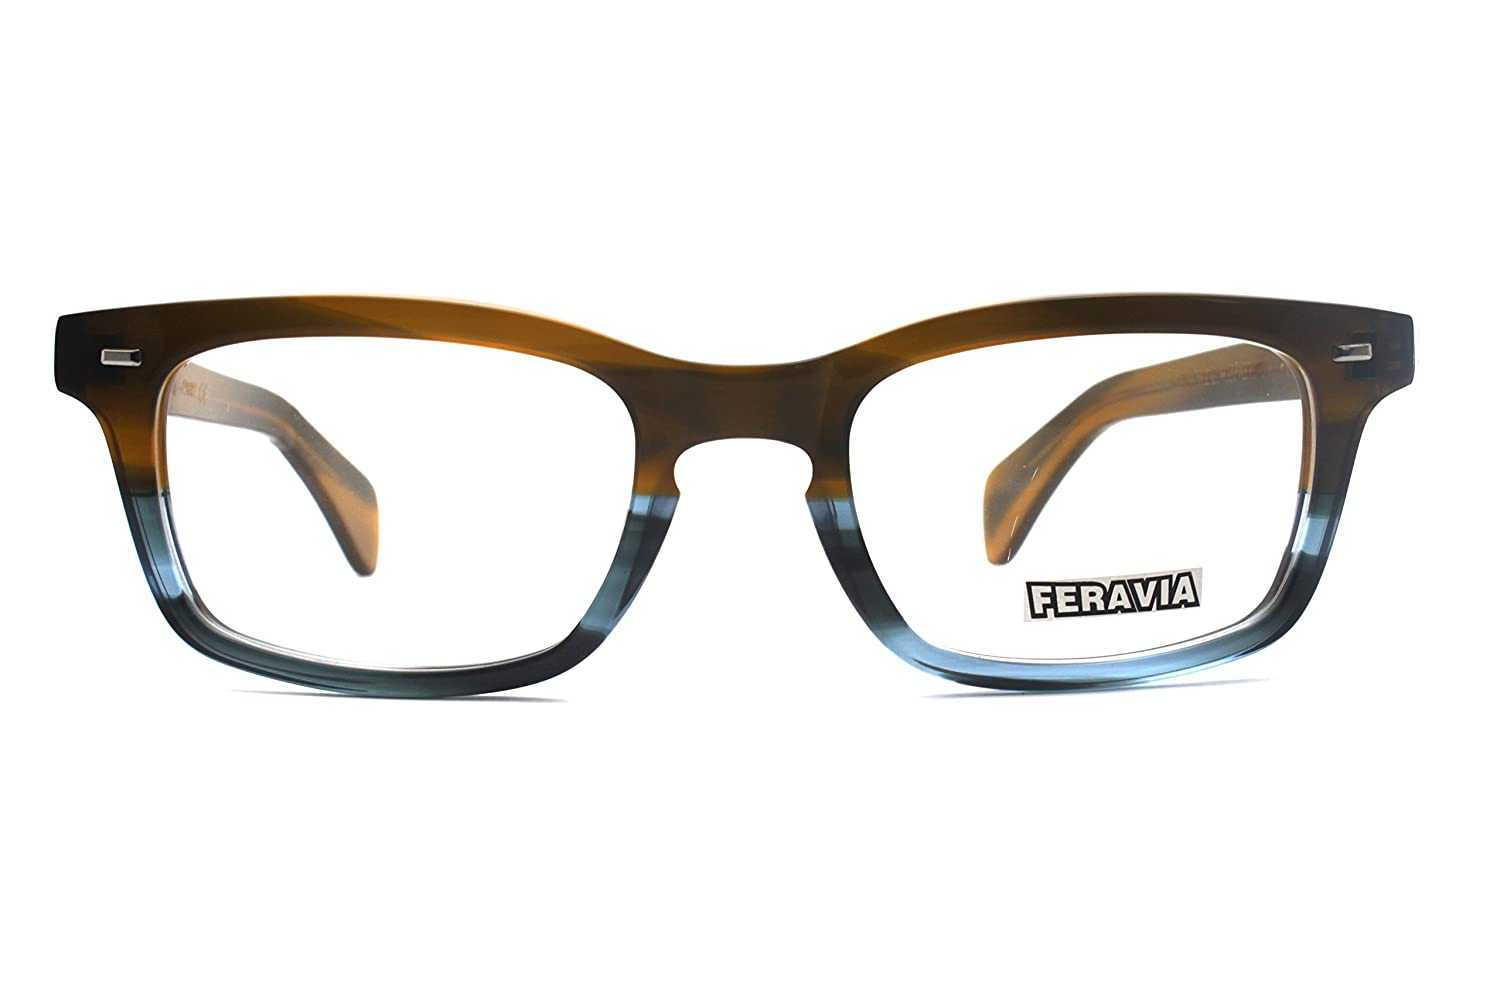 1bab9e706e Men Eyeglasses Strong Look Bold Rectangular Clear Lens Two Toned Acetate  Lixin Glasses